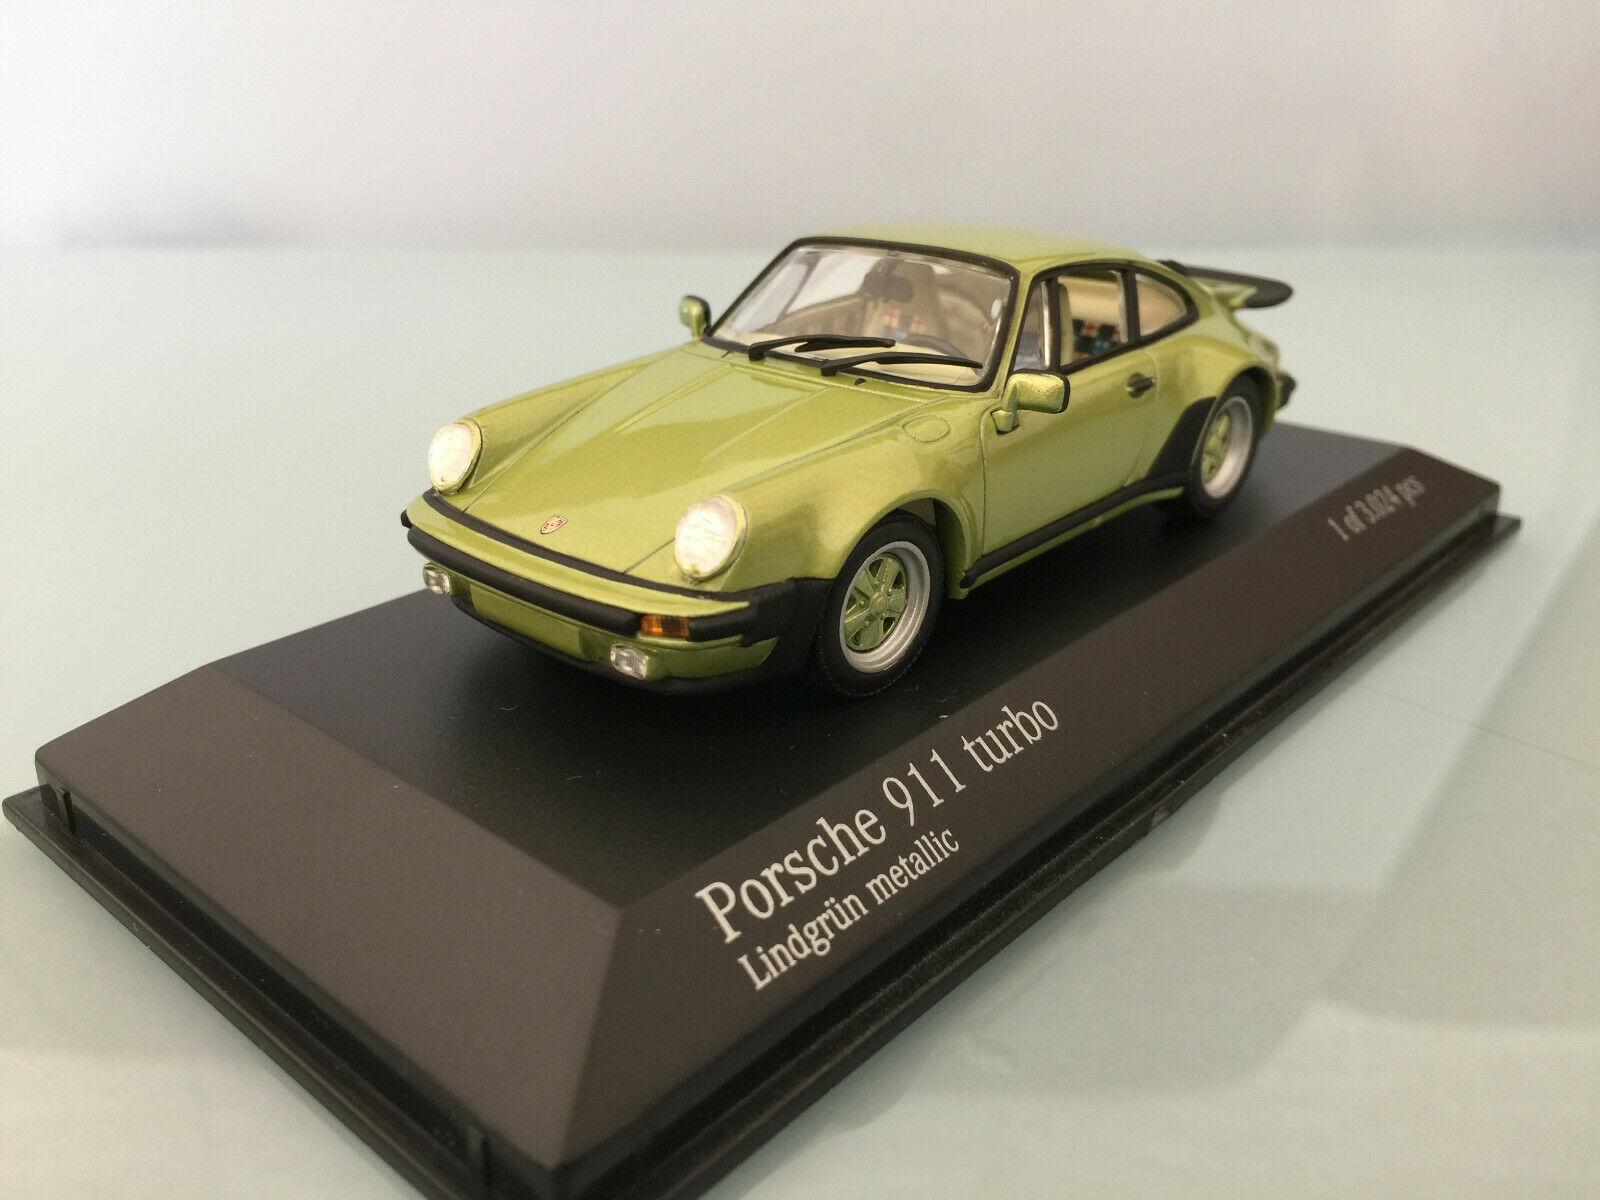 1 43 Minichamps Porsche 911 turbo , 1977 , Lindgrün metallic